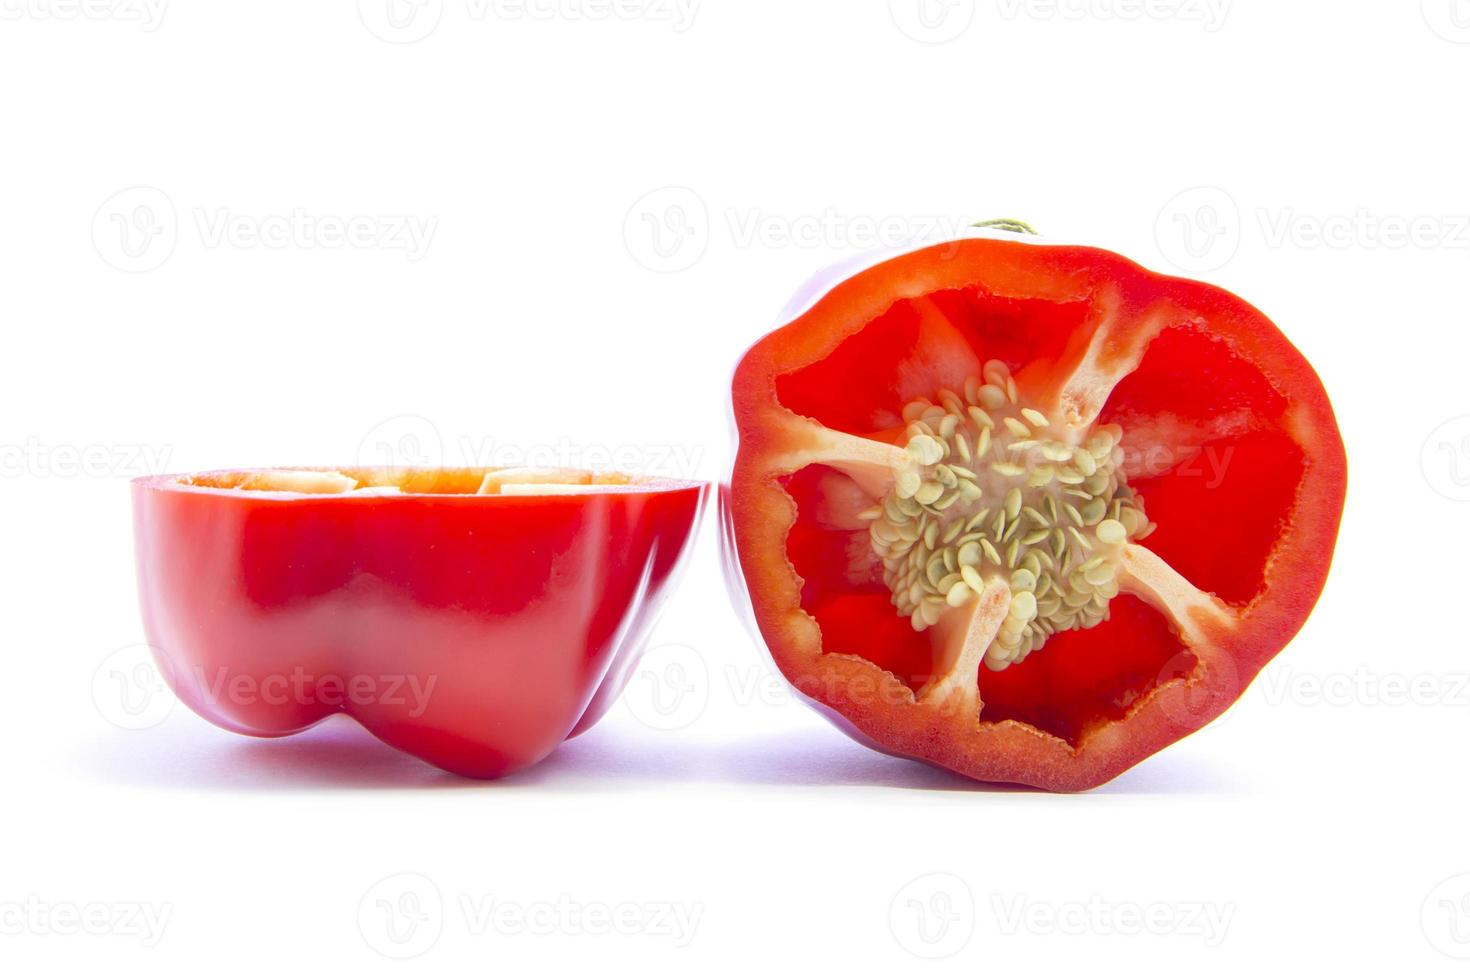 Half sliced red bell chili pepper with seed photo